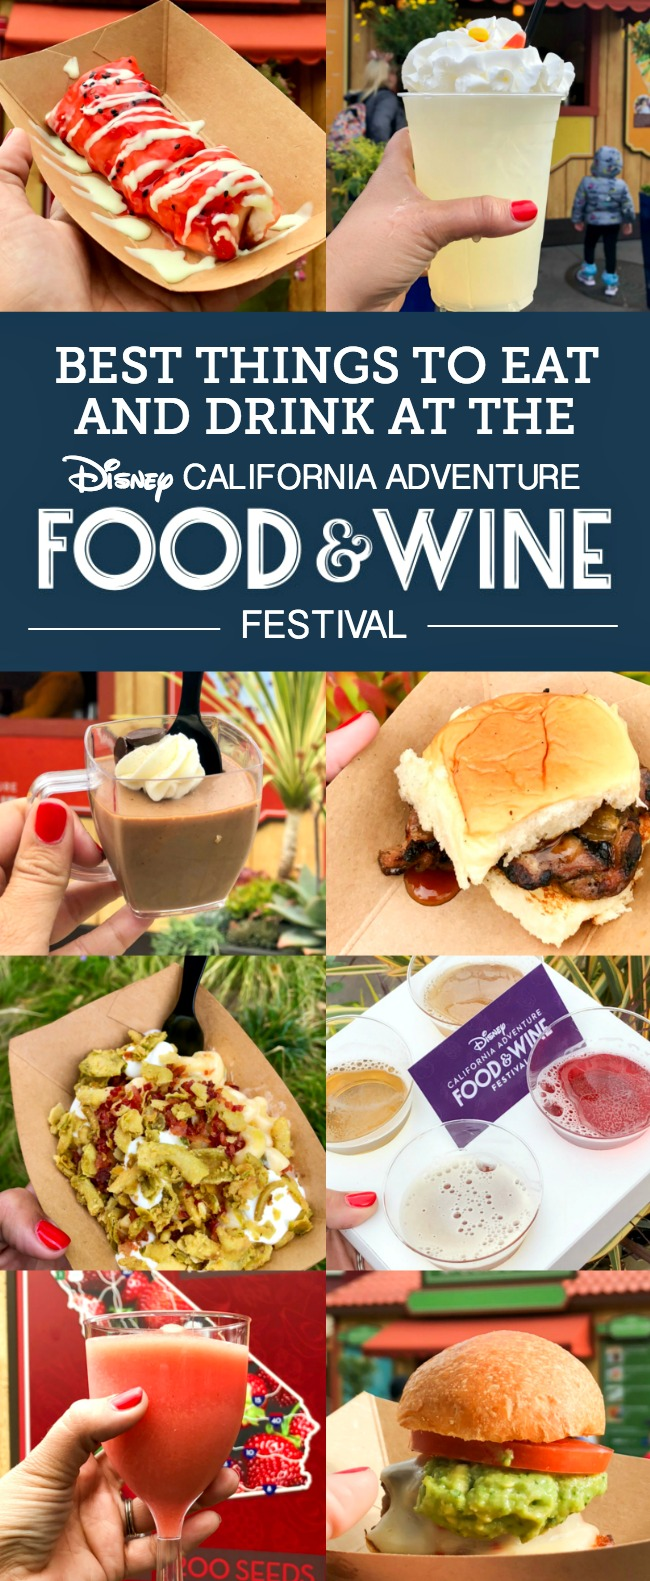 Best Things To Eat At Food And Wine Festival